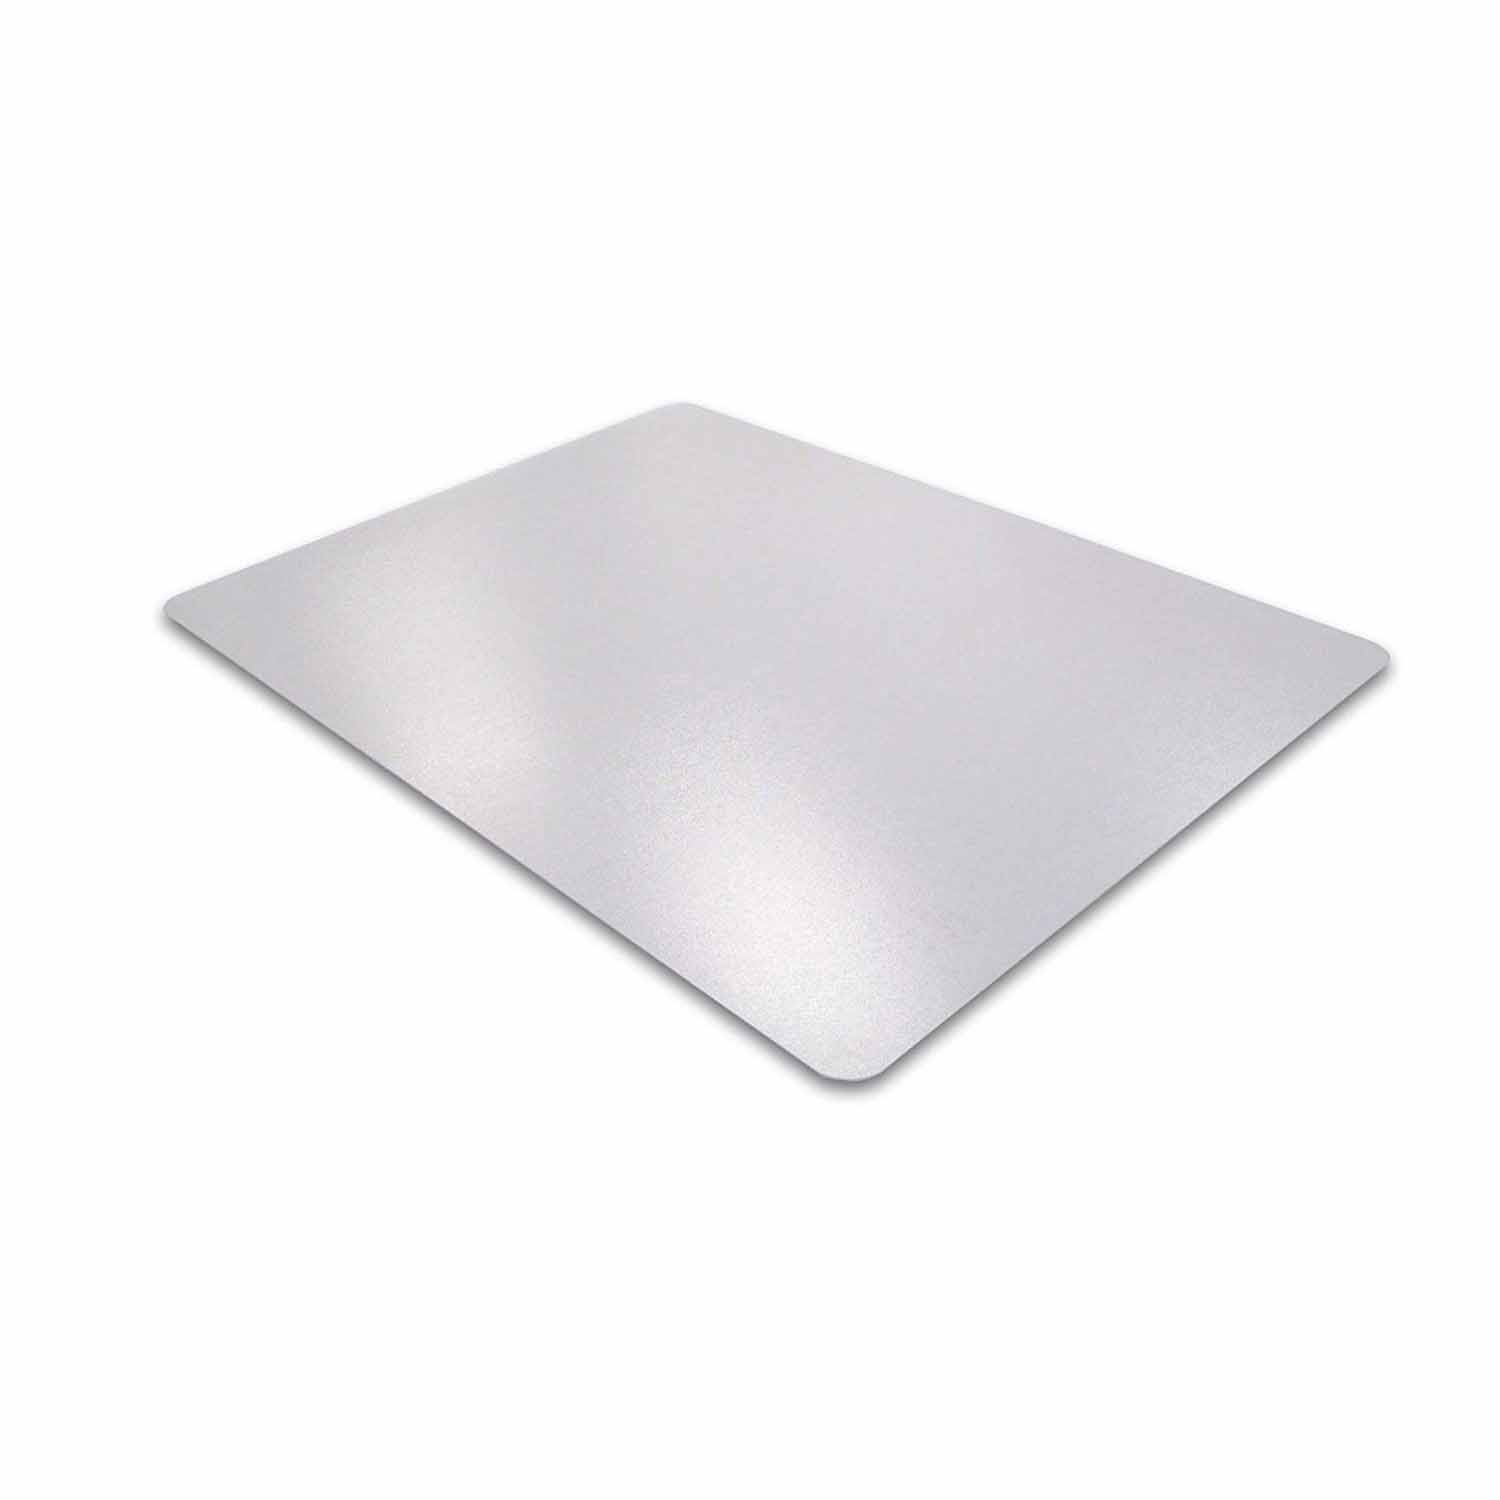 Floortex Anti-Slip Rectangular Chairmat For Tiled Floors - 120 x 150cm (pc)